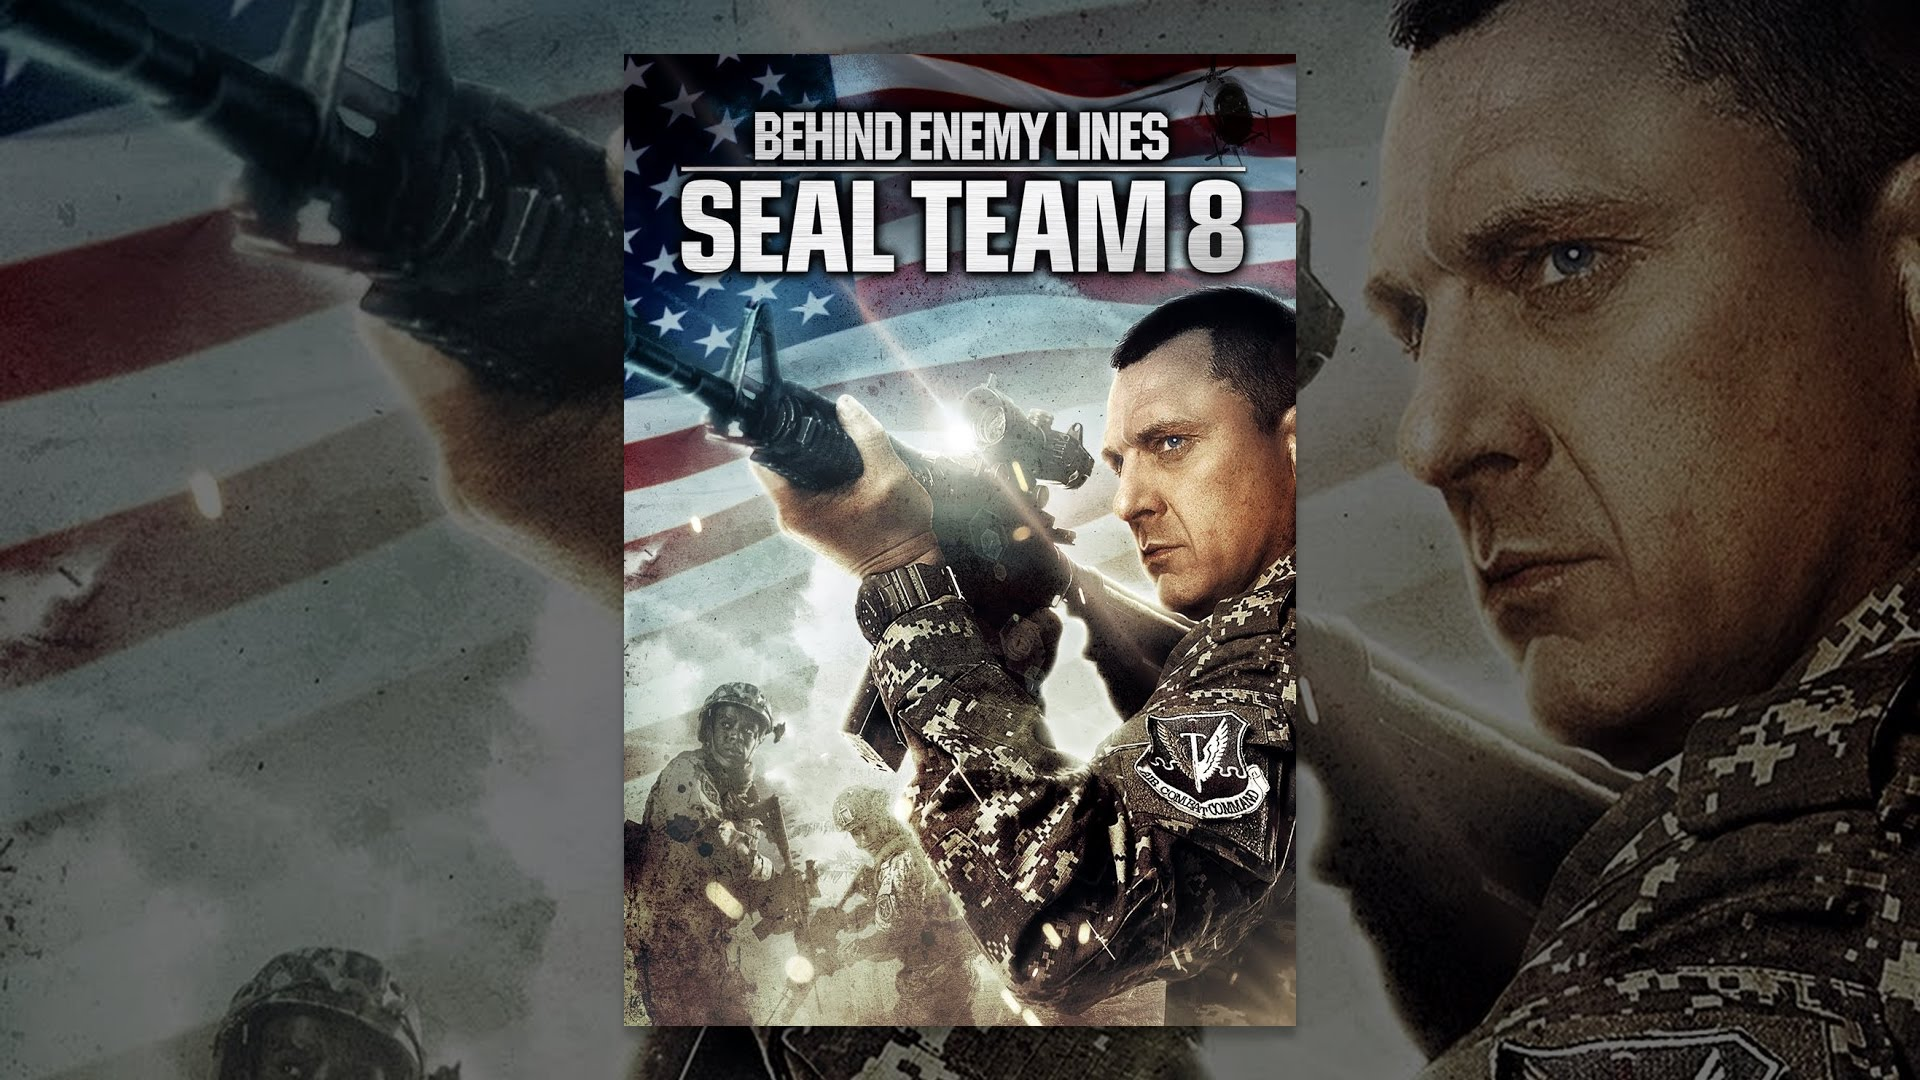 seal team eight behind enemy lines soundtrack